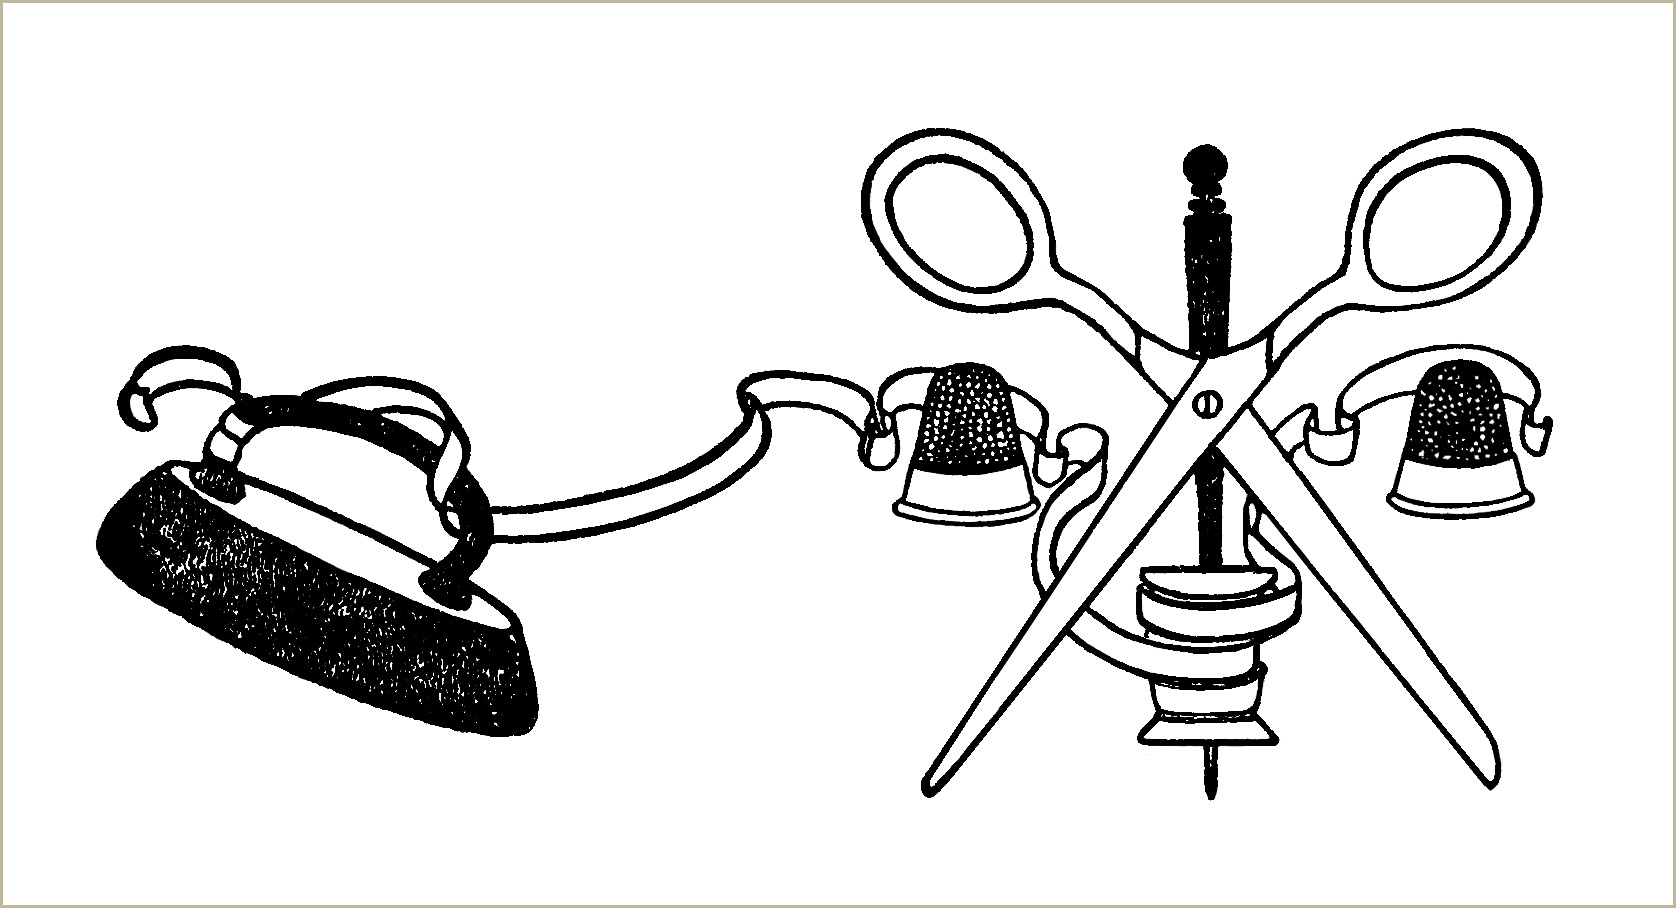 Free Vintage Clip Art Sewing Notions